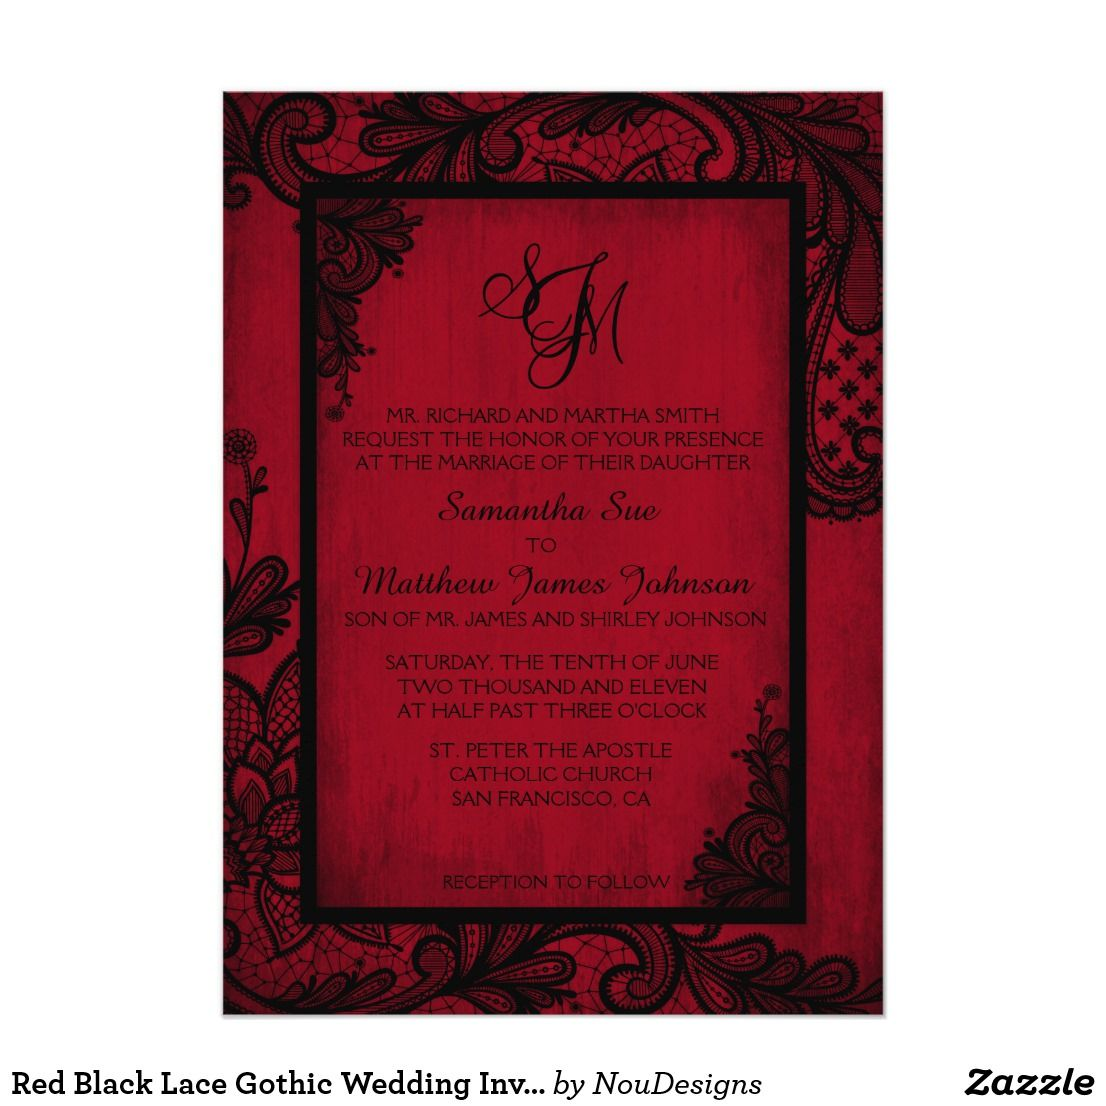 Red Black Lace Gothic Wedding Invitation Card | Gothic & Horror ...